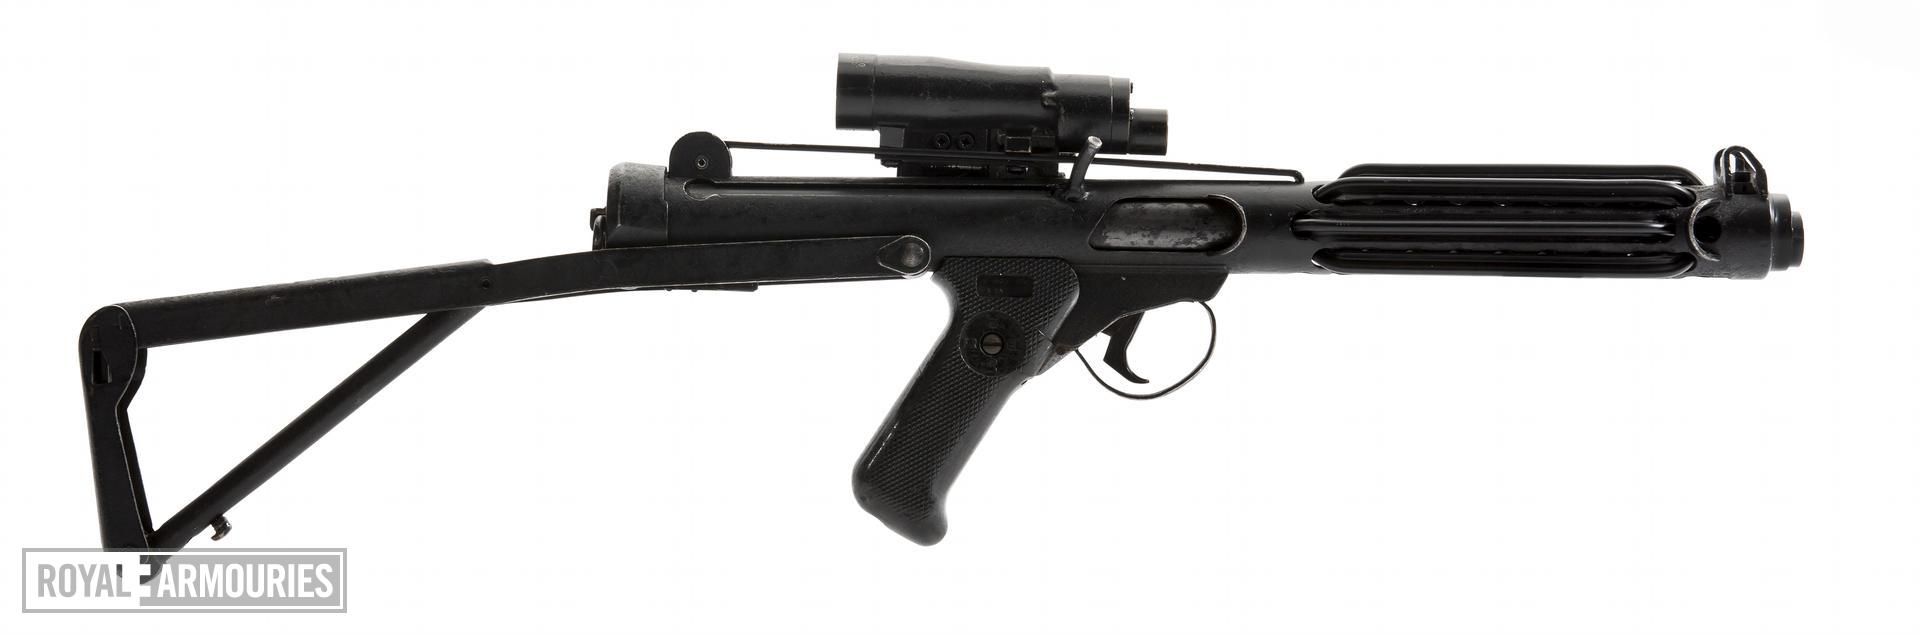 Imperial Stormtrooper Blaster from the movie Star Wars